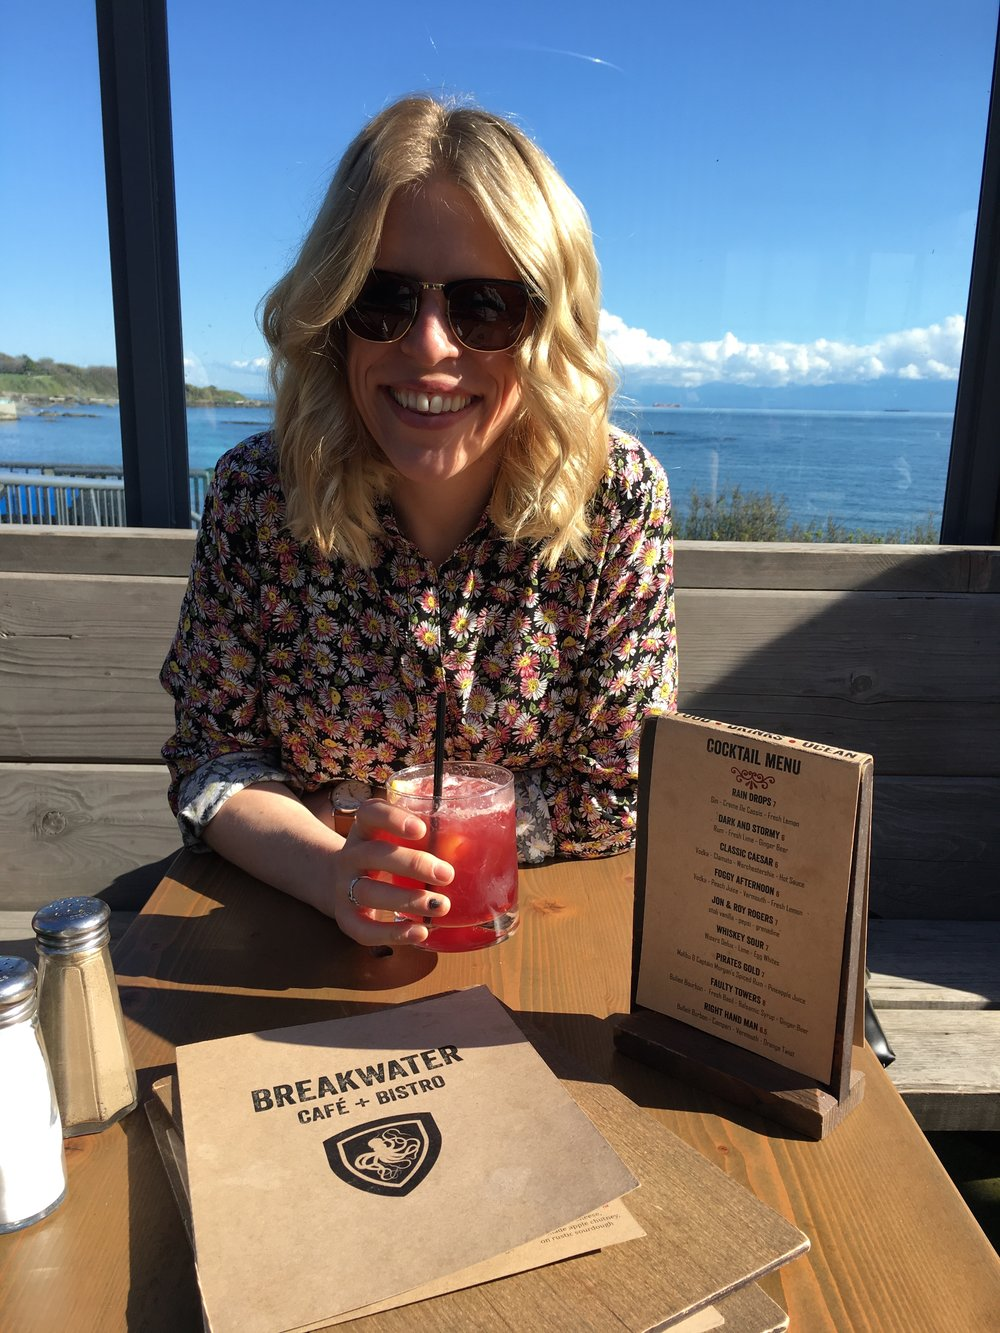 Enjoying a drink at the Breakwater in Victoria